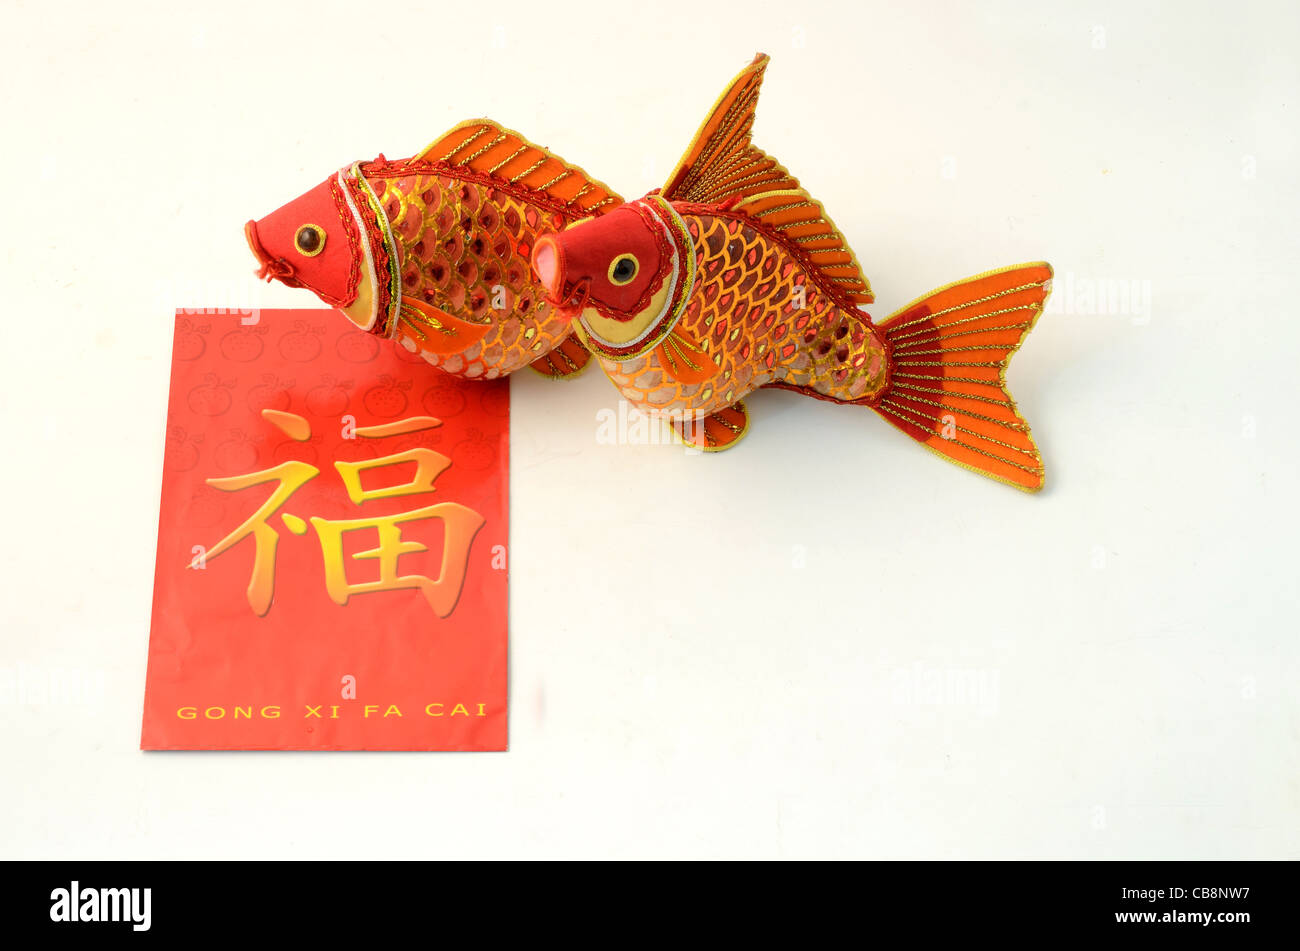 Gold Fishes Stock Photos & Gold Fishes Stock Images - Alamy